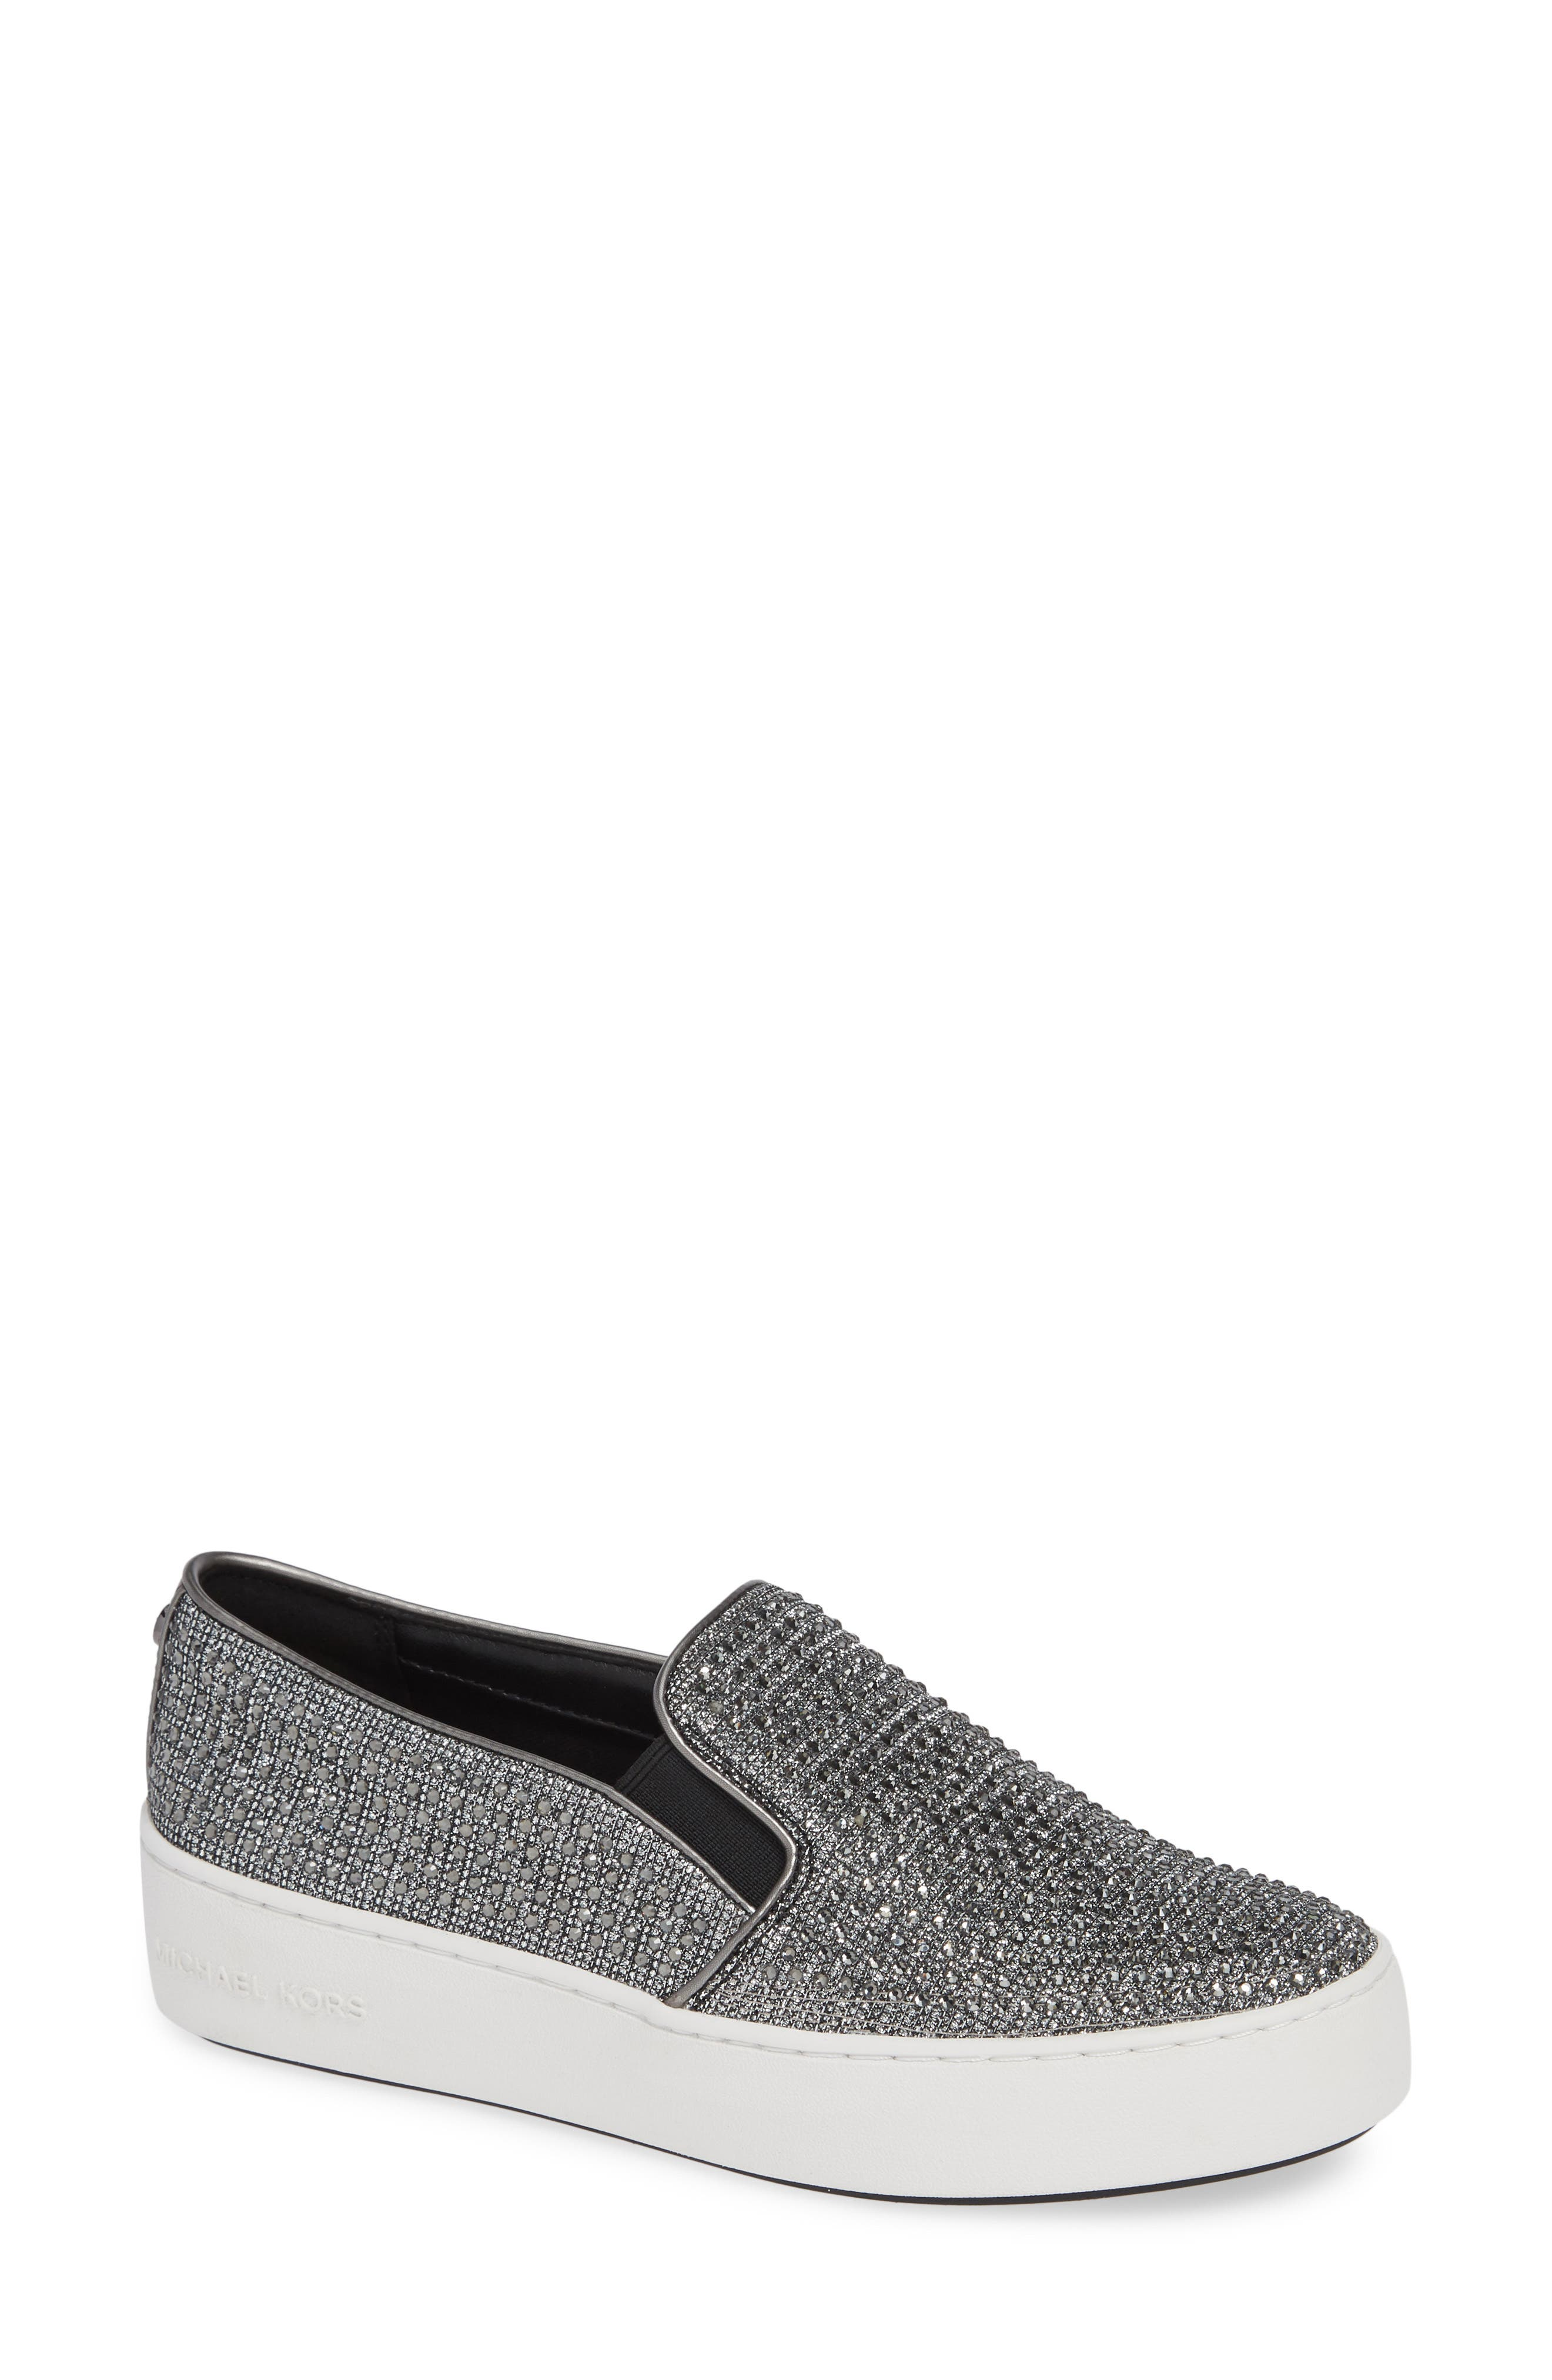 Trend Glitter Mesh Slip-On Sneakers in Black/ Silver